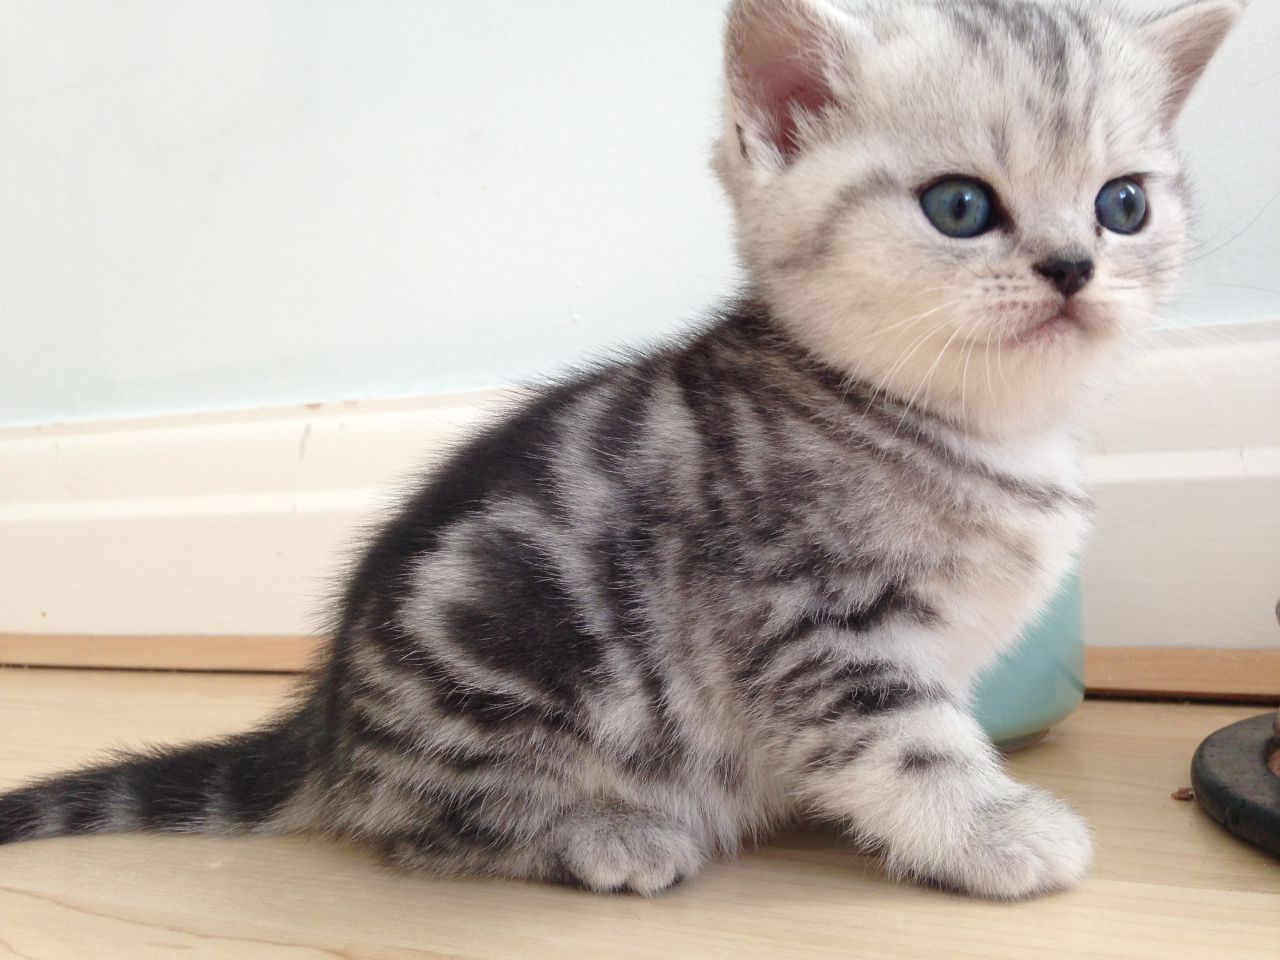 Stunning Bsh Spotty Tabby Kittens For Sale Cute Puppies And Kittens Silver Tabby Kitten Cats And Kittens